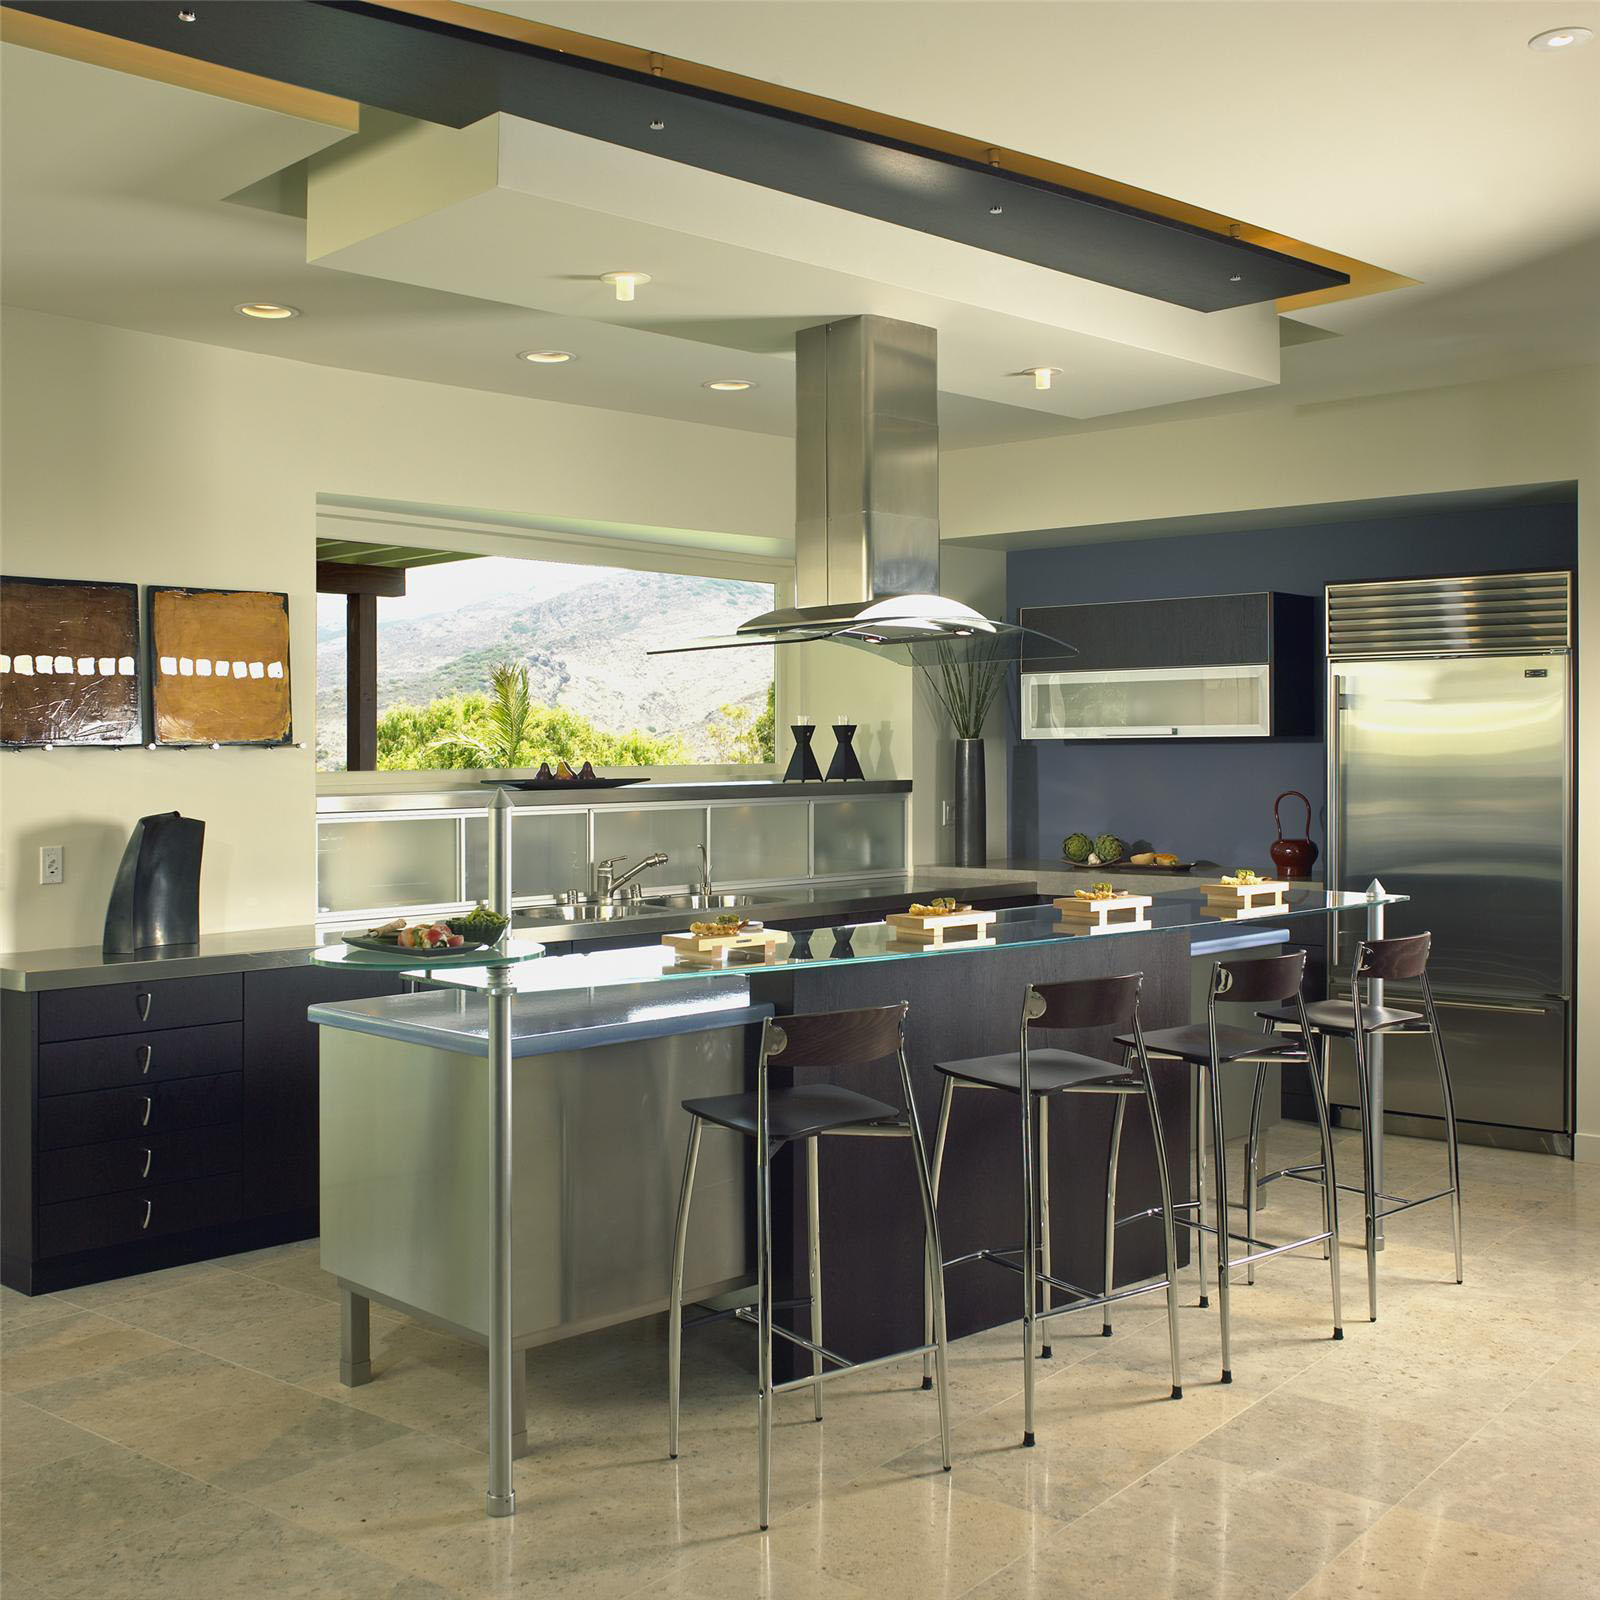 Kitchen Interior Design: Open Contemporary Kitchen Design Ideas